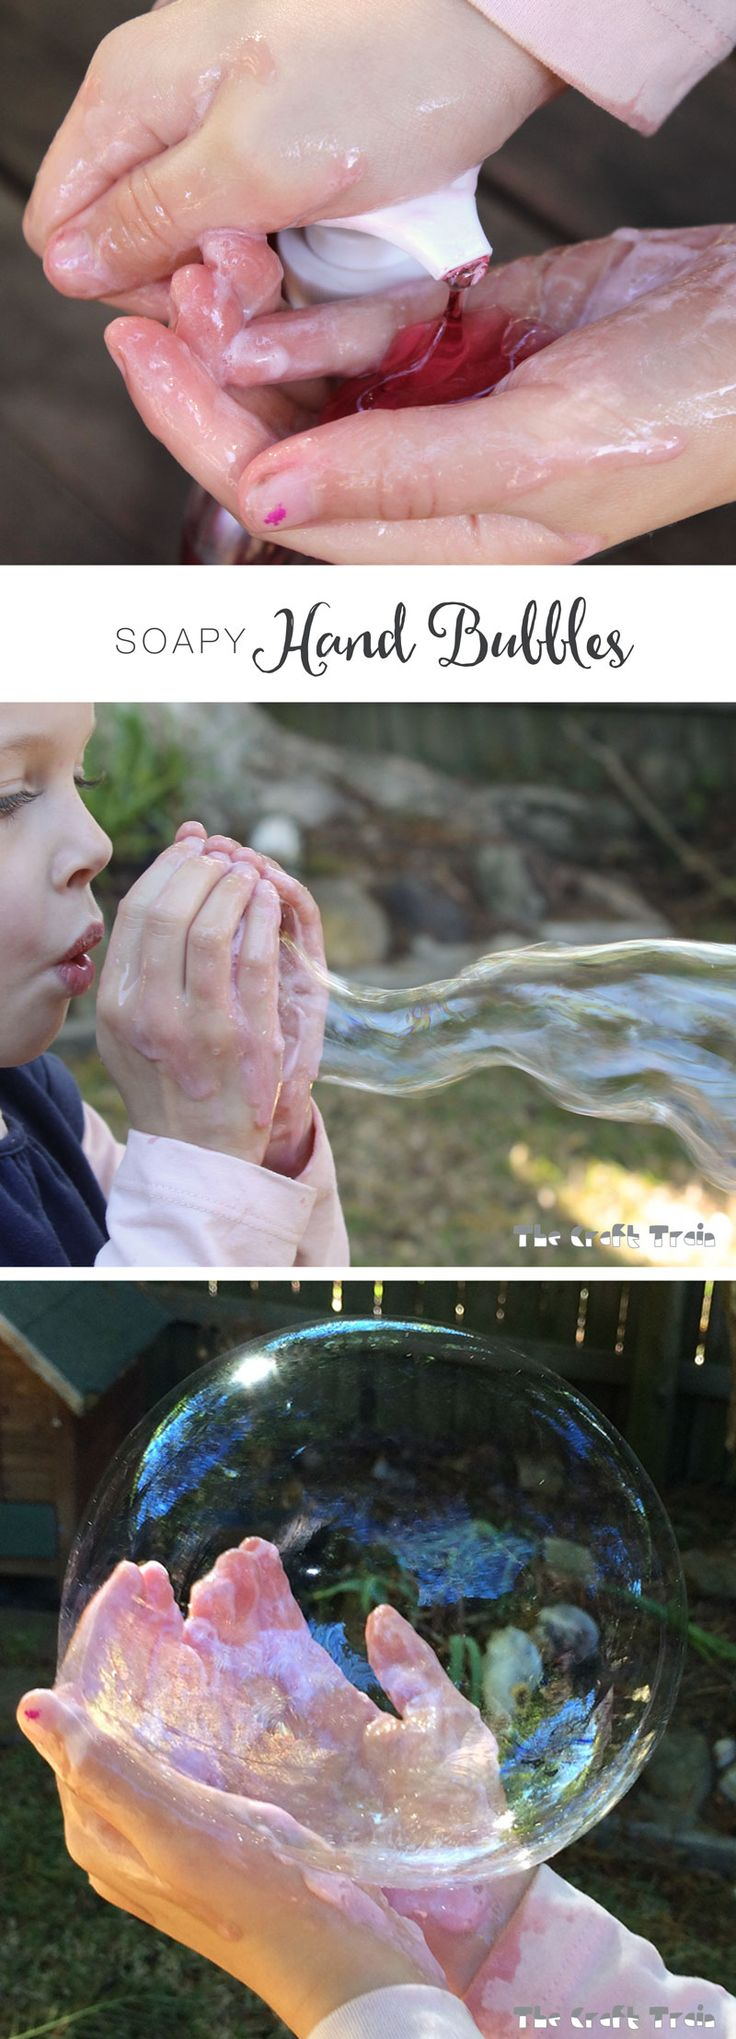 Make beautiful big bubbles you can catch using your hands and some liquid soap